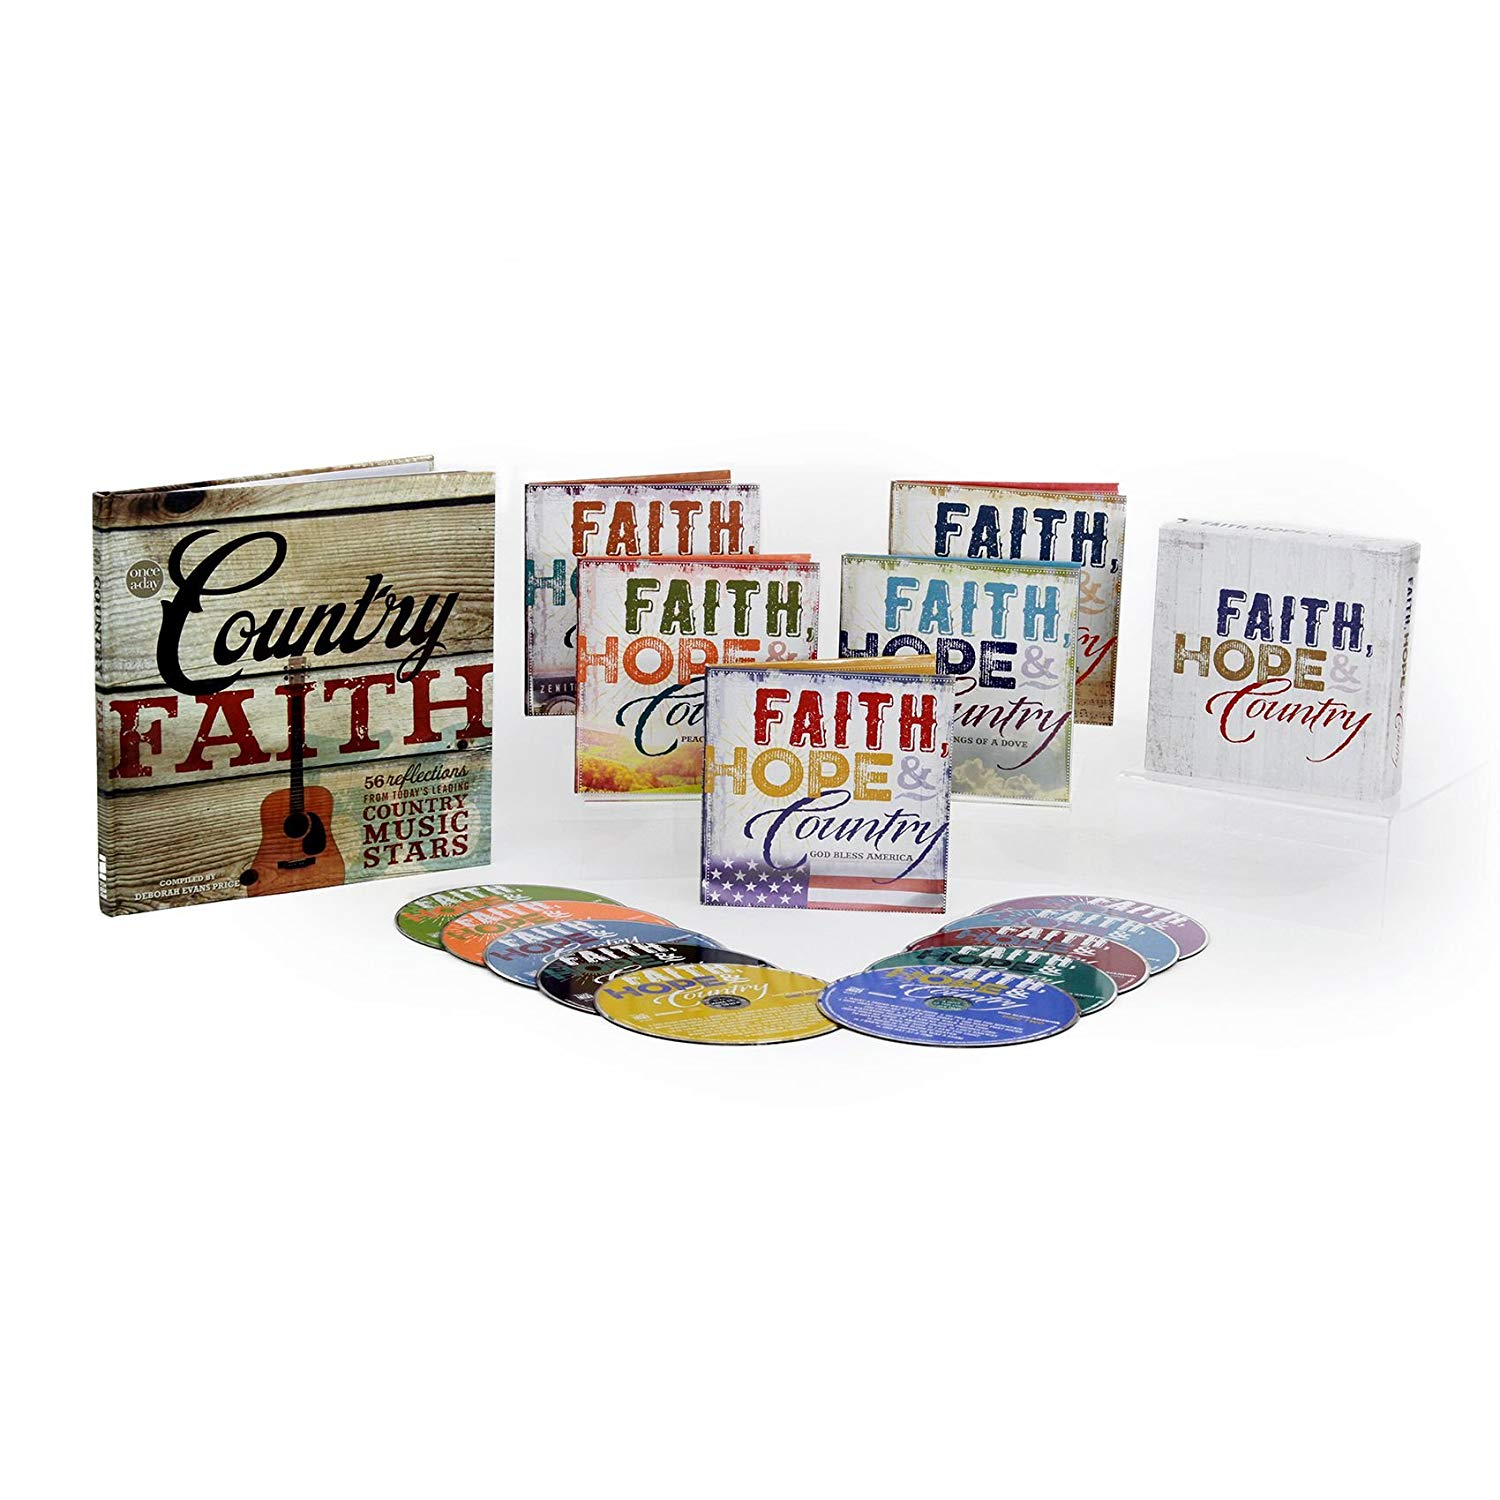 faith, hope and country cd set